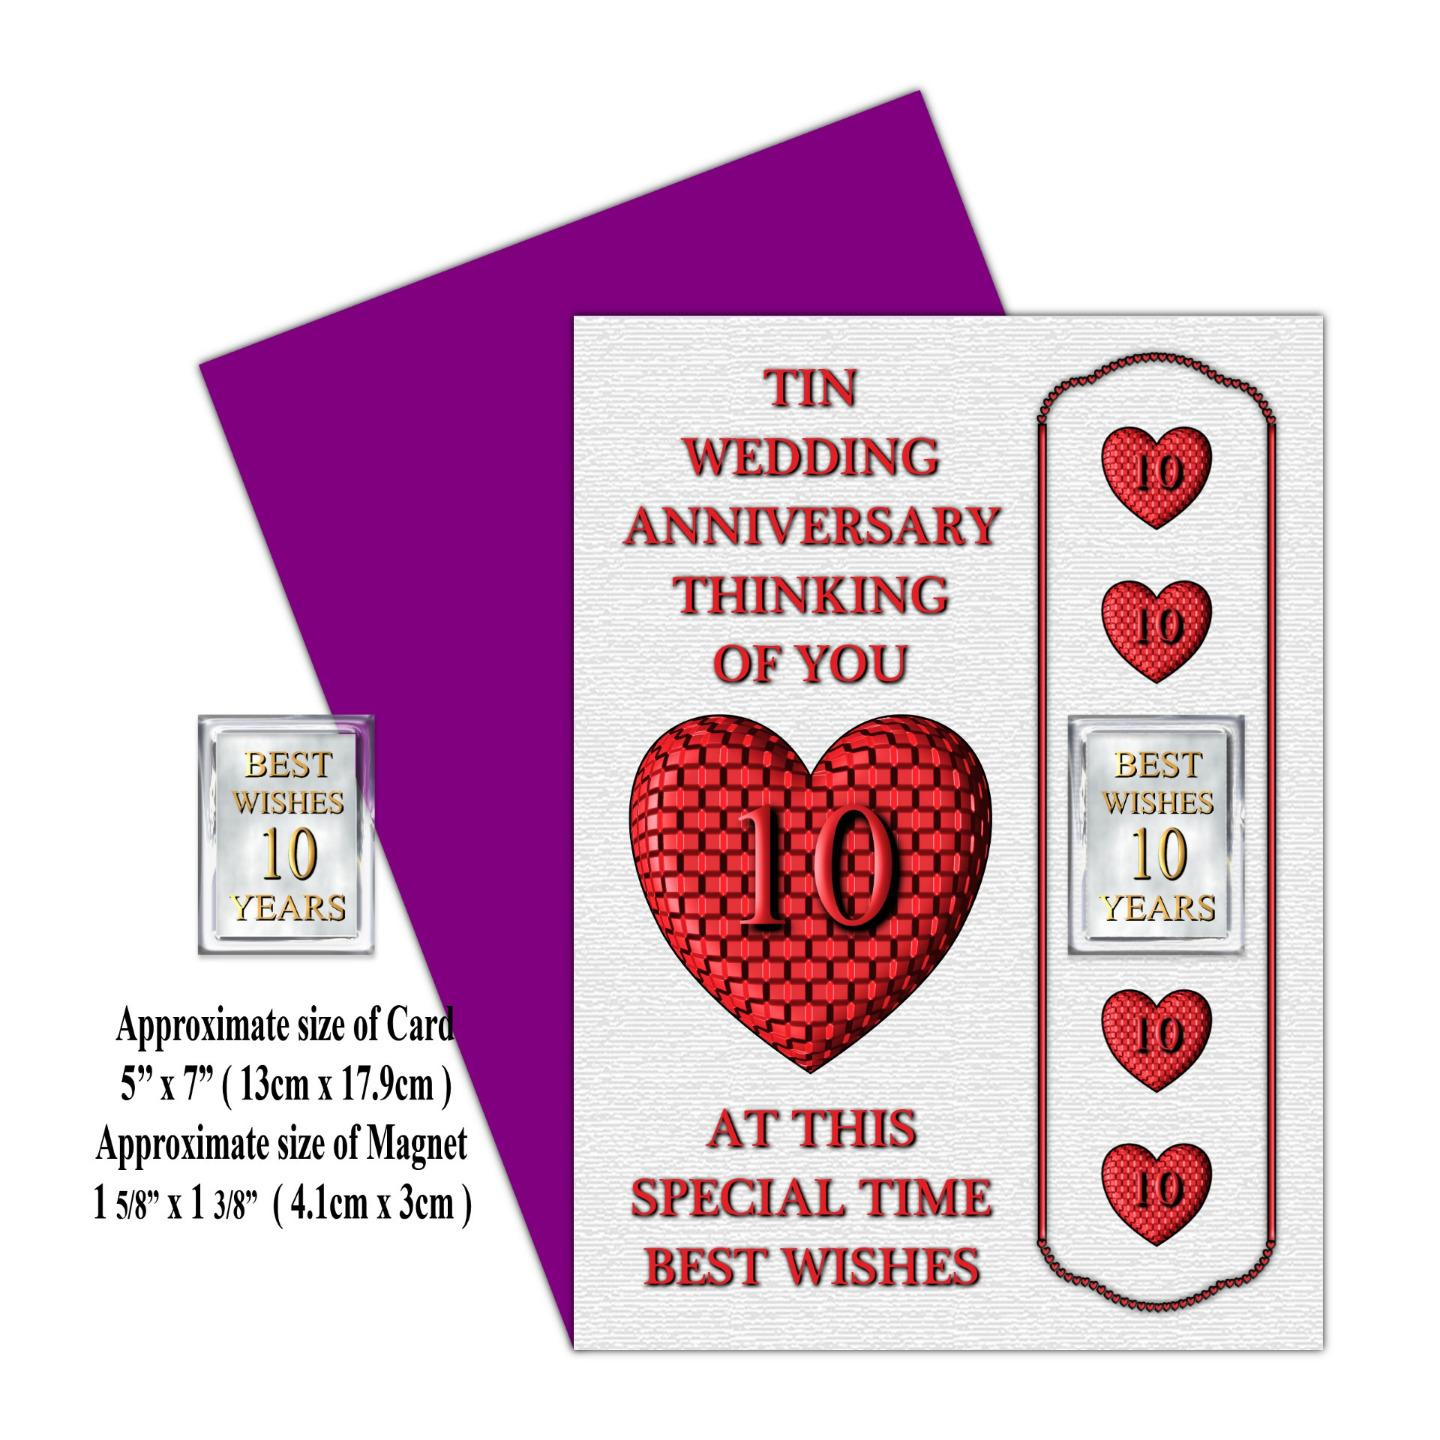 ... 24th Years - Your Wedding Anniversary Card & Magnet Gift - Family